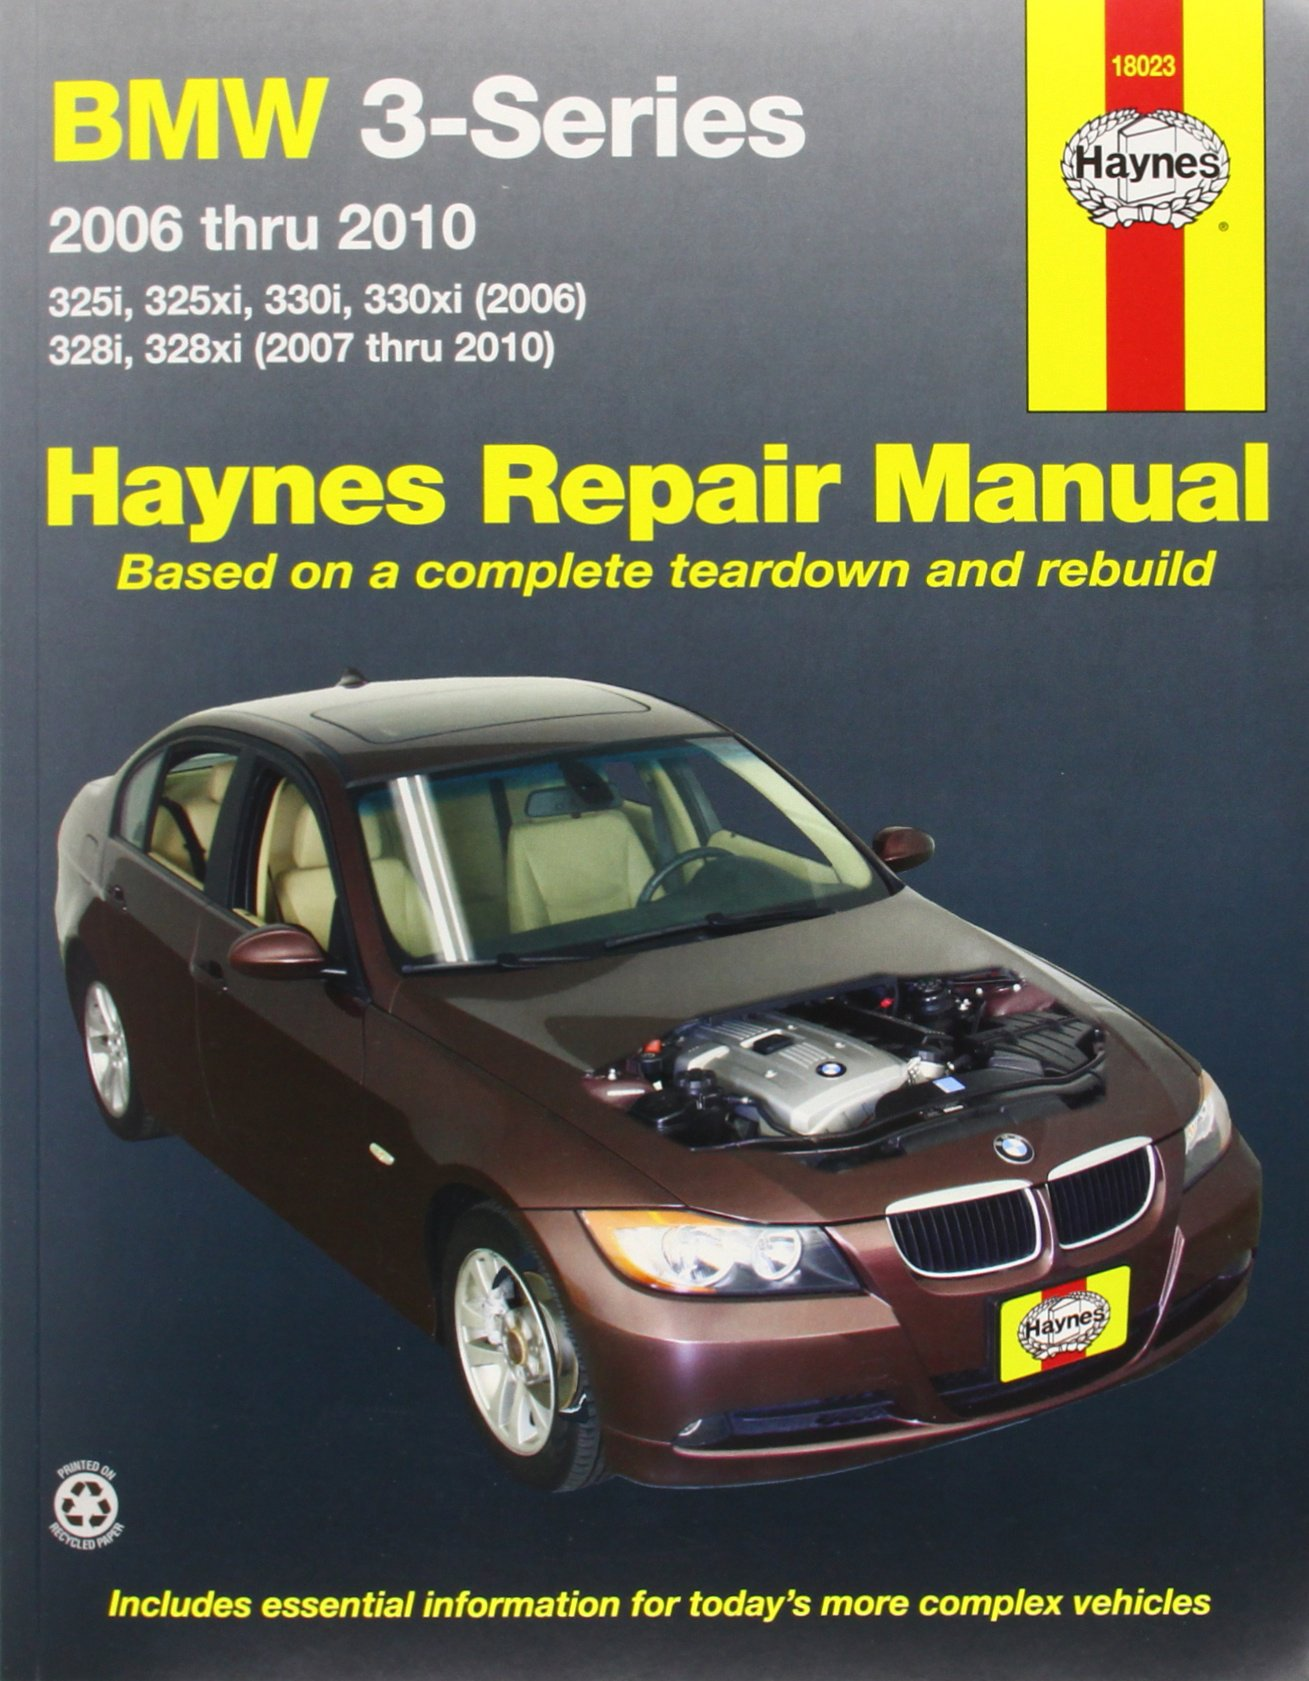 bmw 3 series automotive repair manual 2006 2010 haynes automotive rh amazon  co uk haynes data book automotive repair manuals haynes auto repair manual  pdf